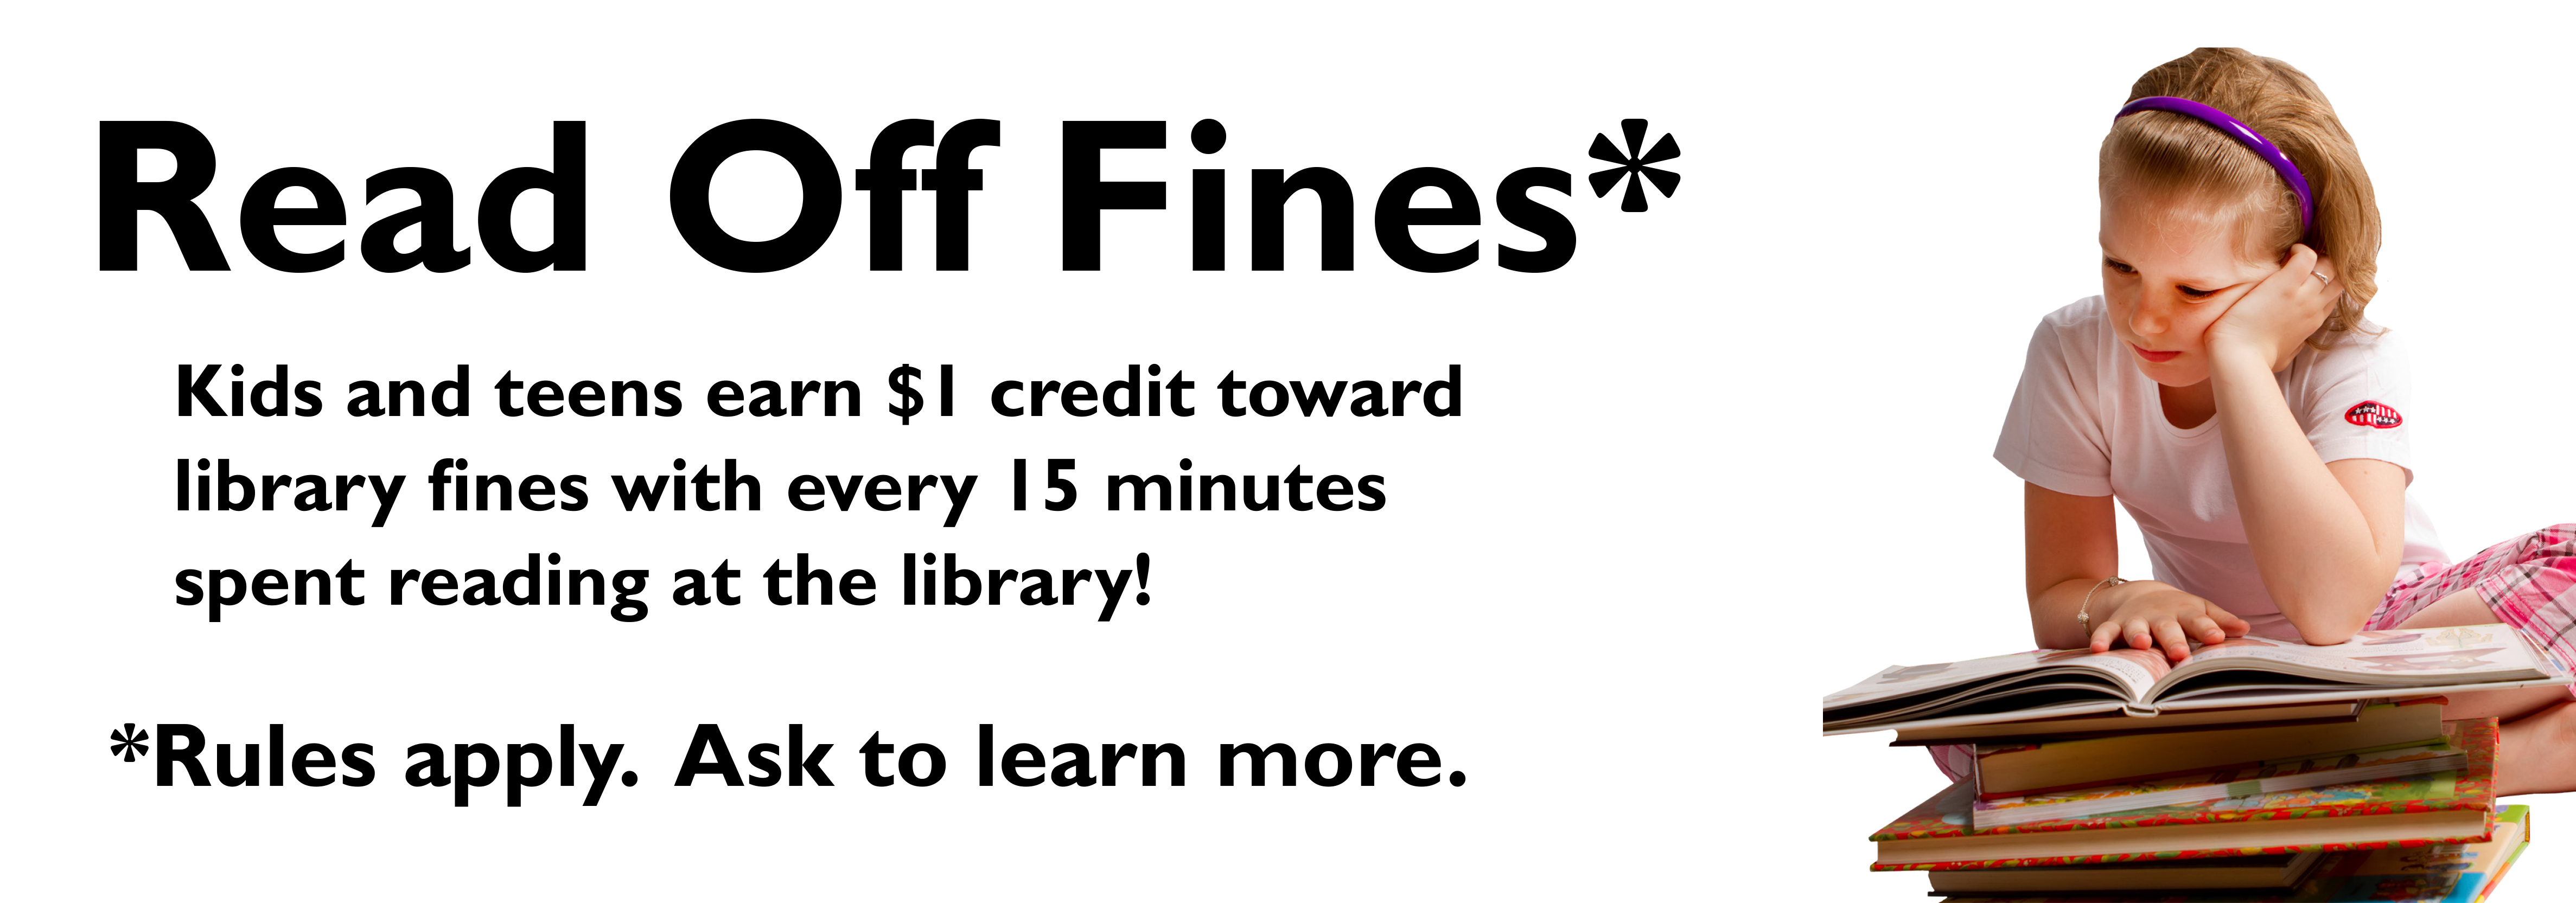 fines-off-thru-0531